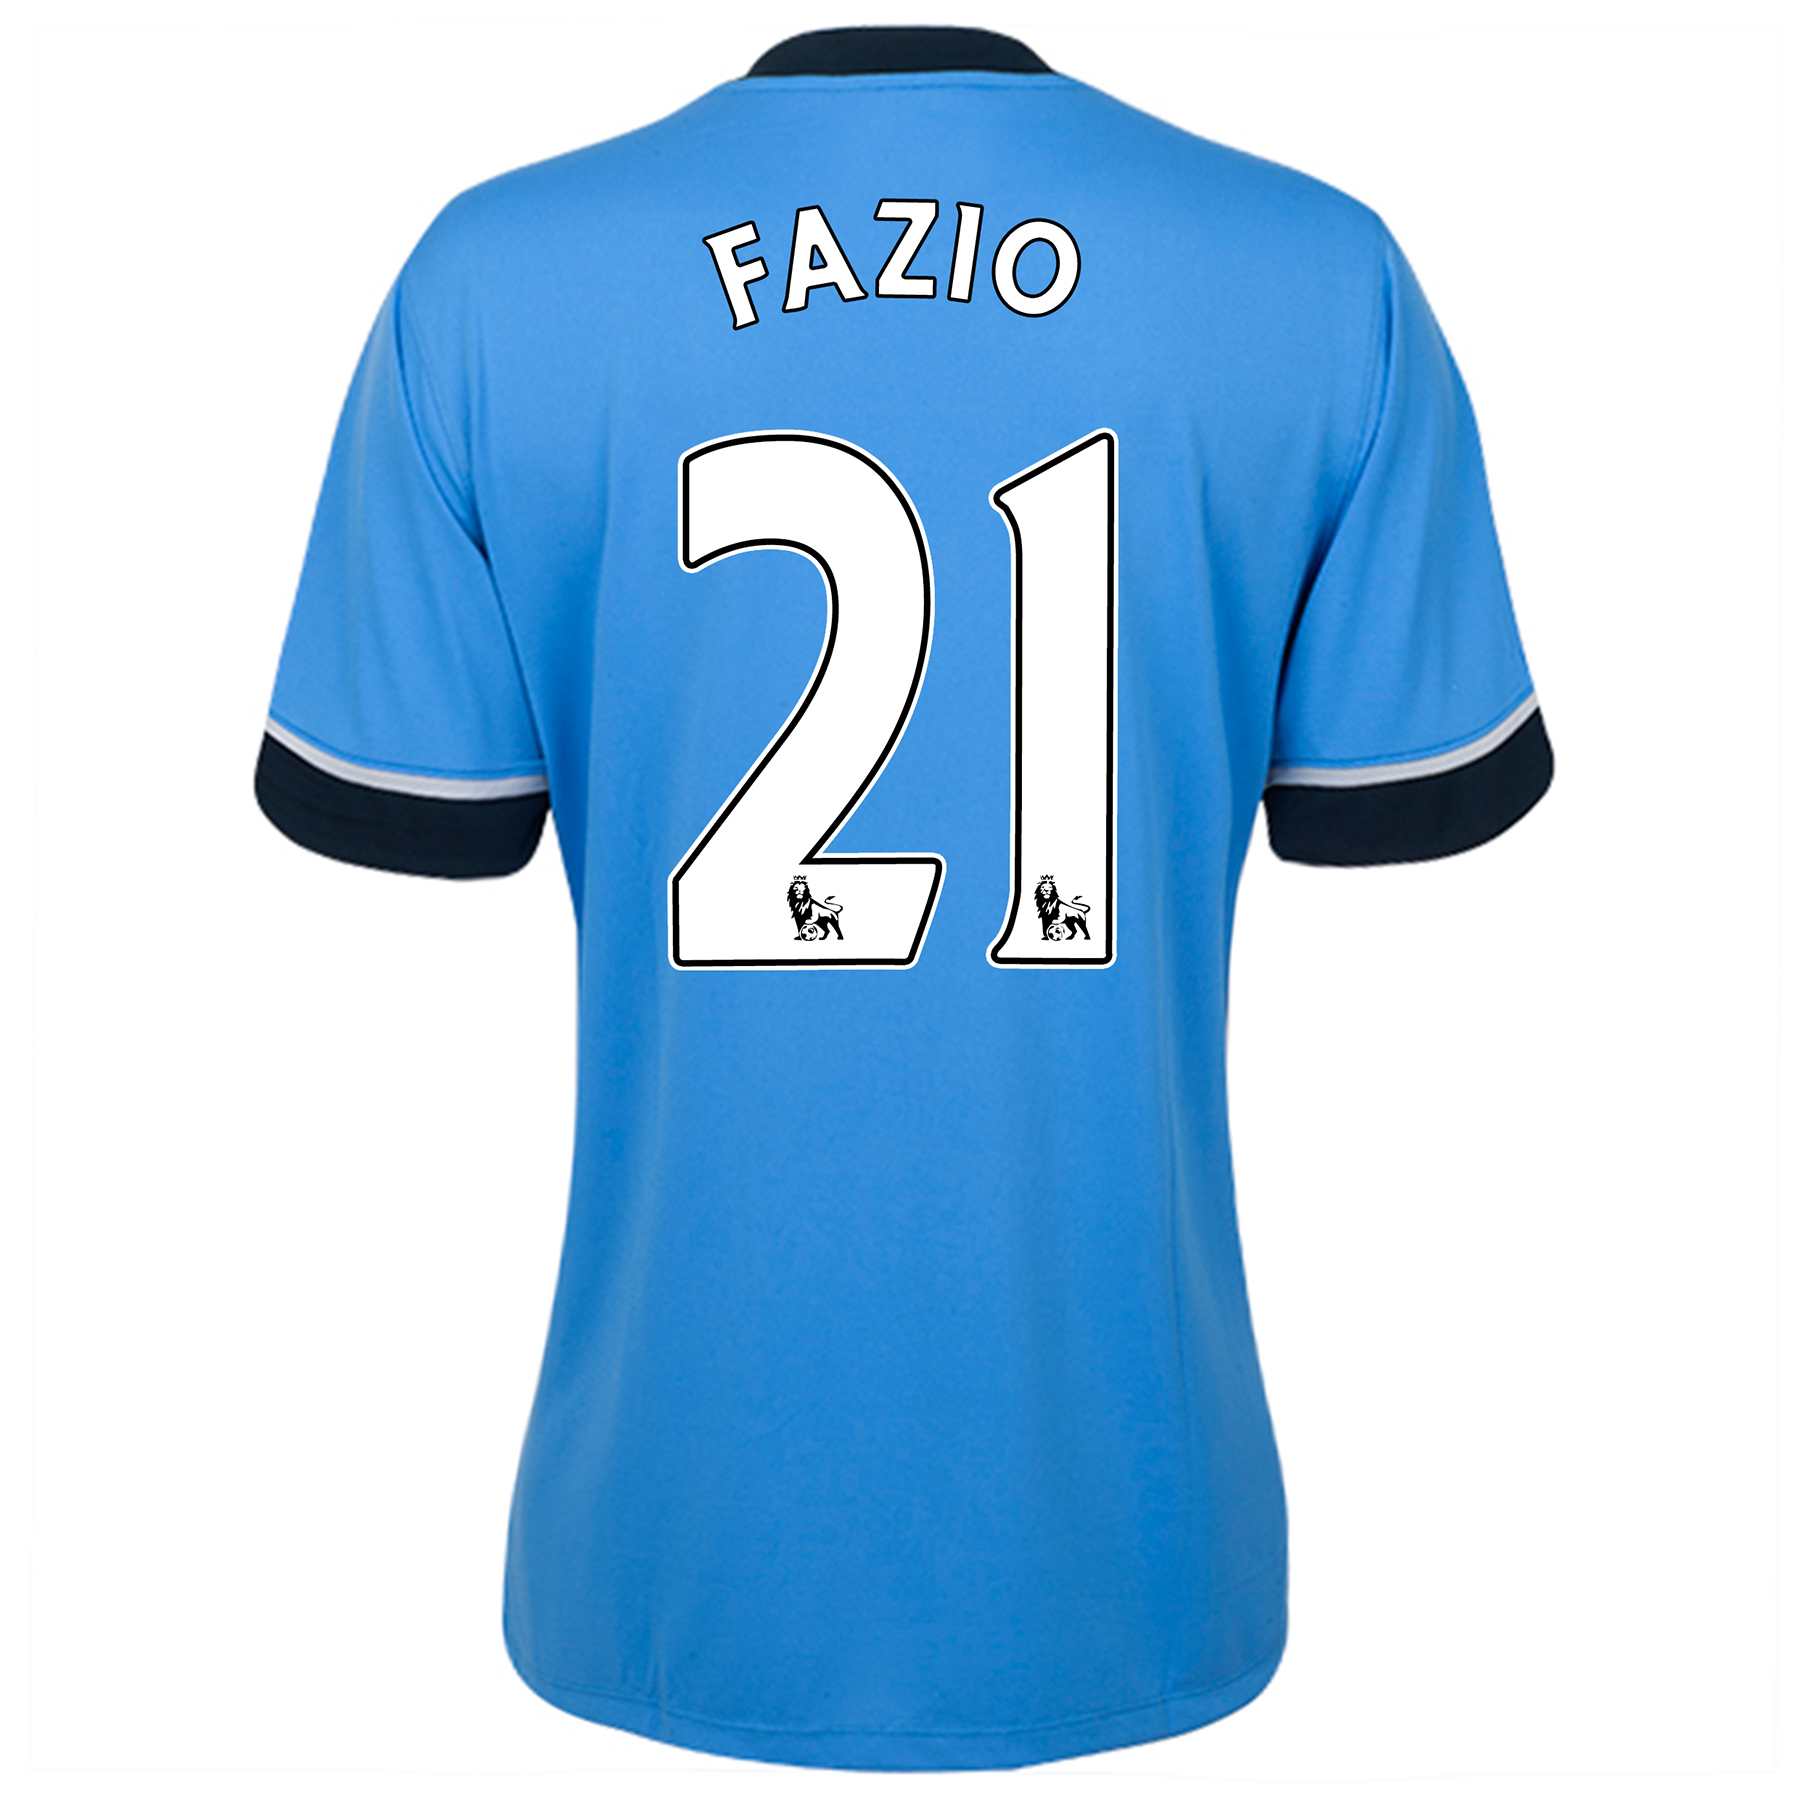 Tottenham Hotspur Away Shirt 2015/16 - Womens Sky Blue with Fazio 21 printing